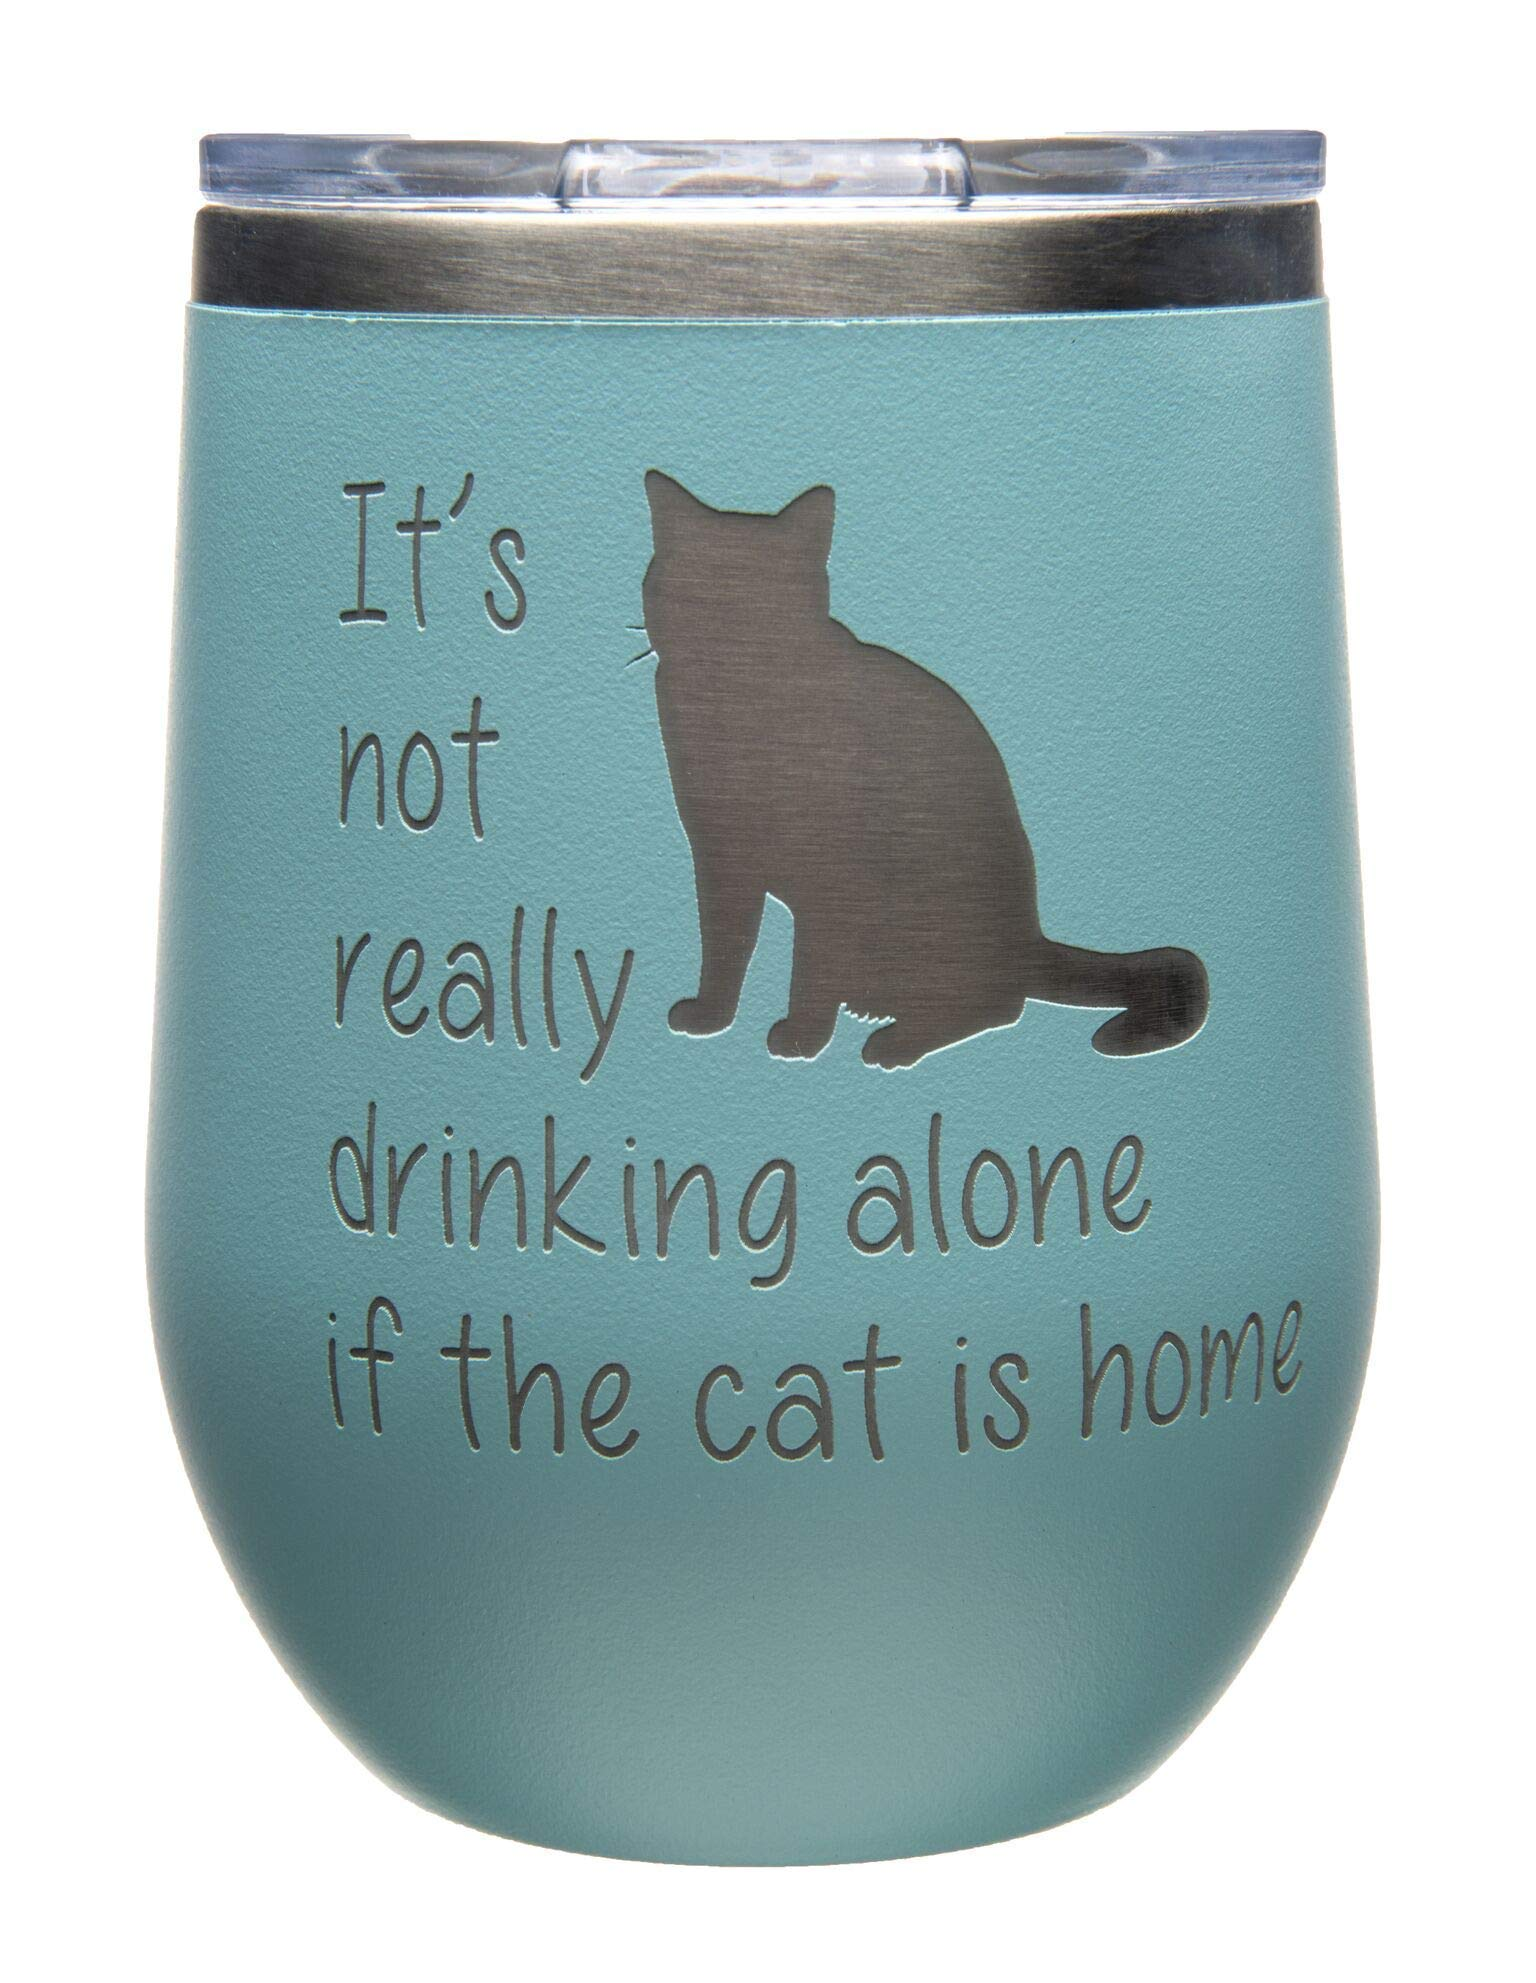 It's not Really Drinking Alone if the Cat is Home Stemless Wine Glass-12oz. - Stainless steel Double insulated Travel Tumbler with Lid-Teal Powder Coated-Laser Engraved(teal cat)